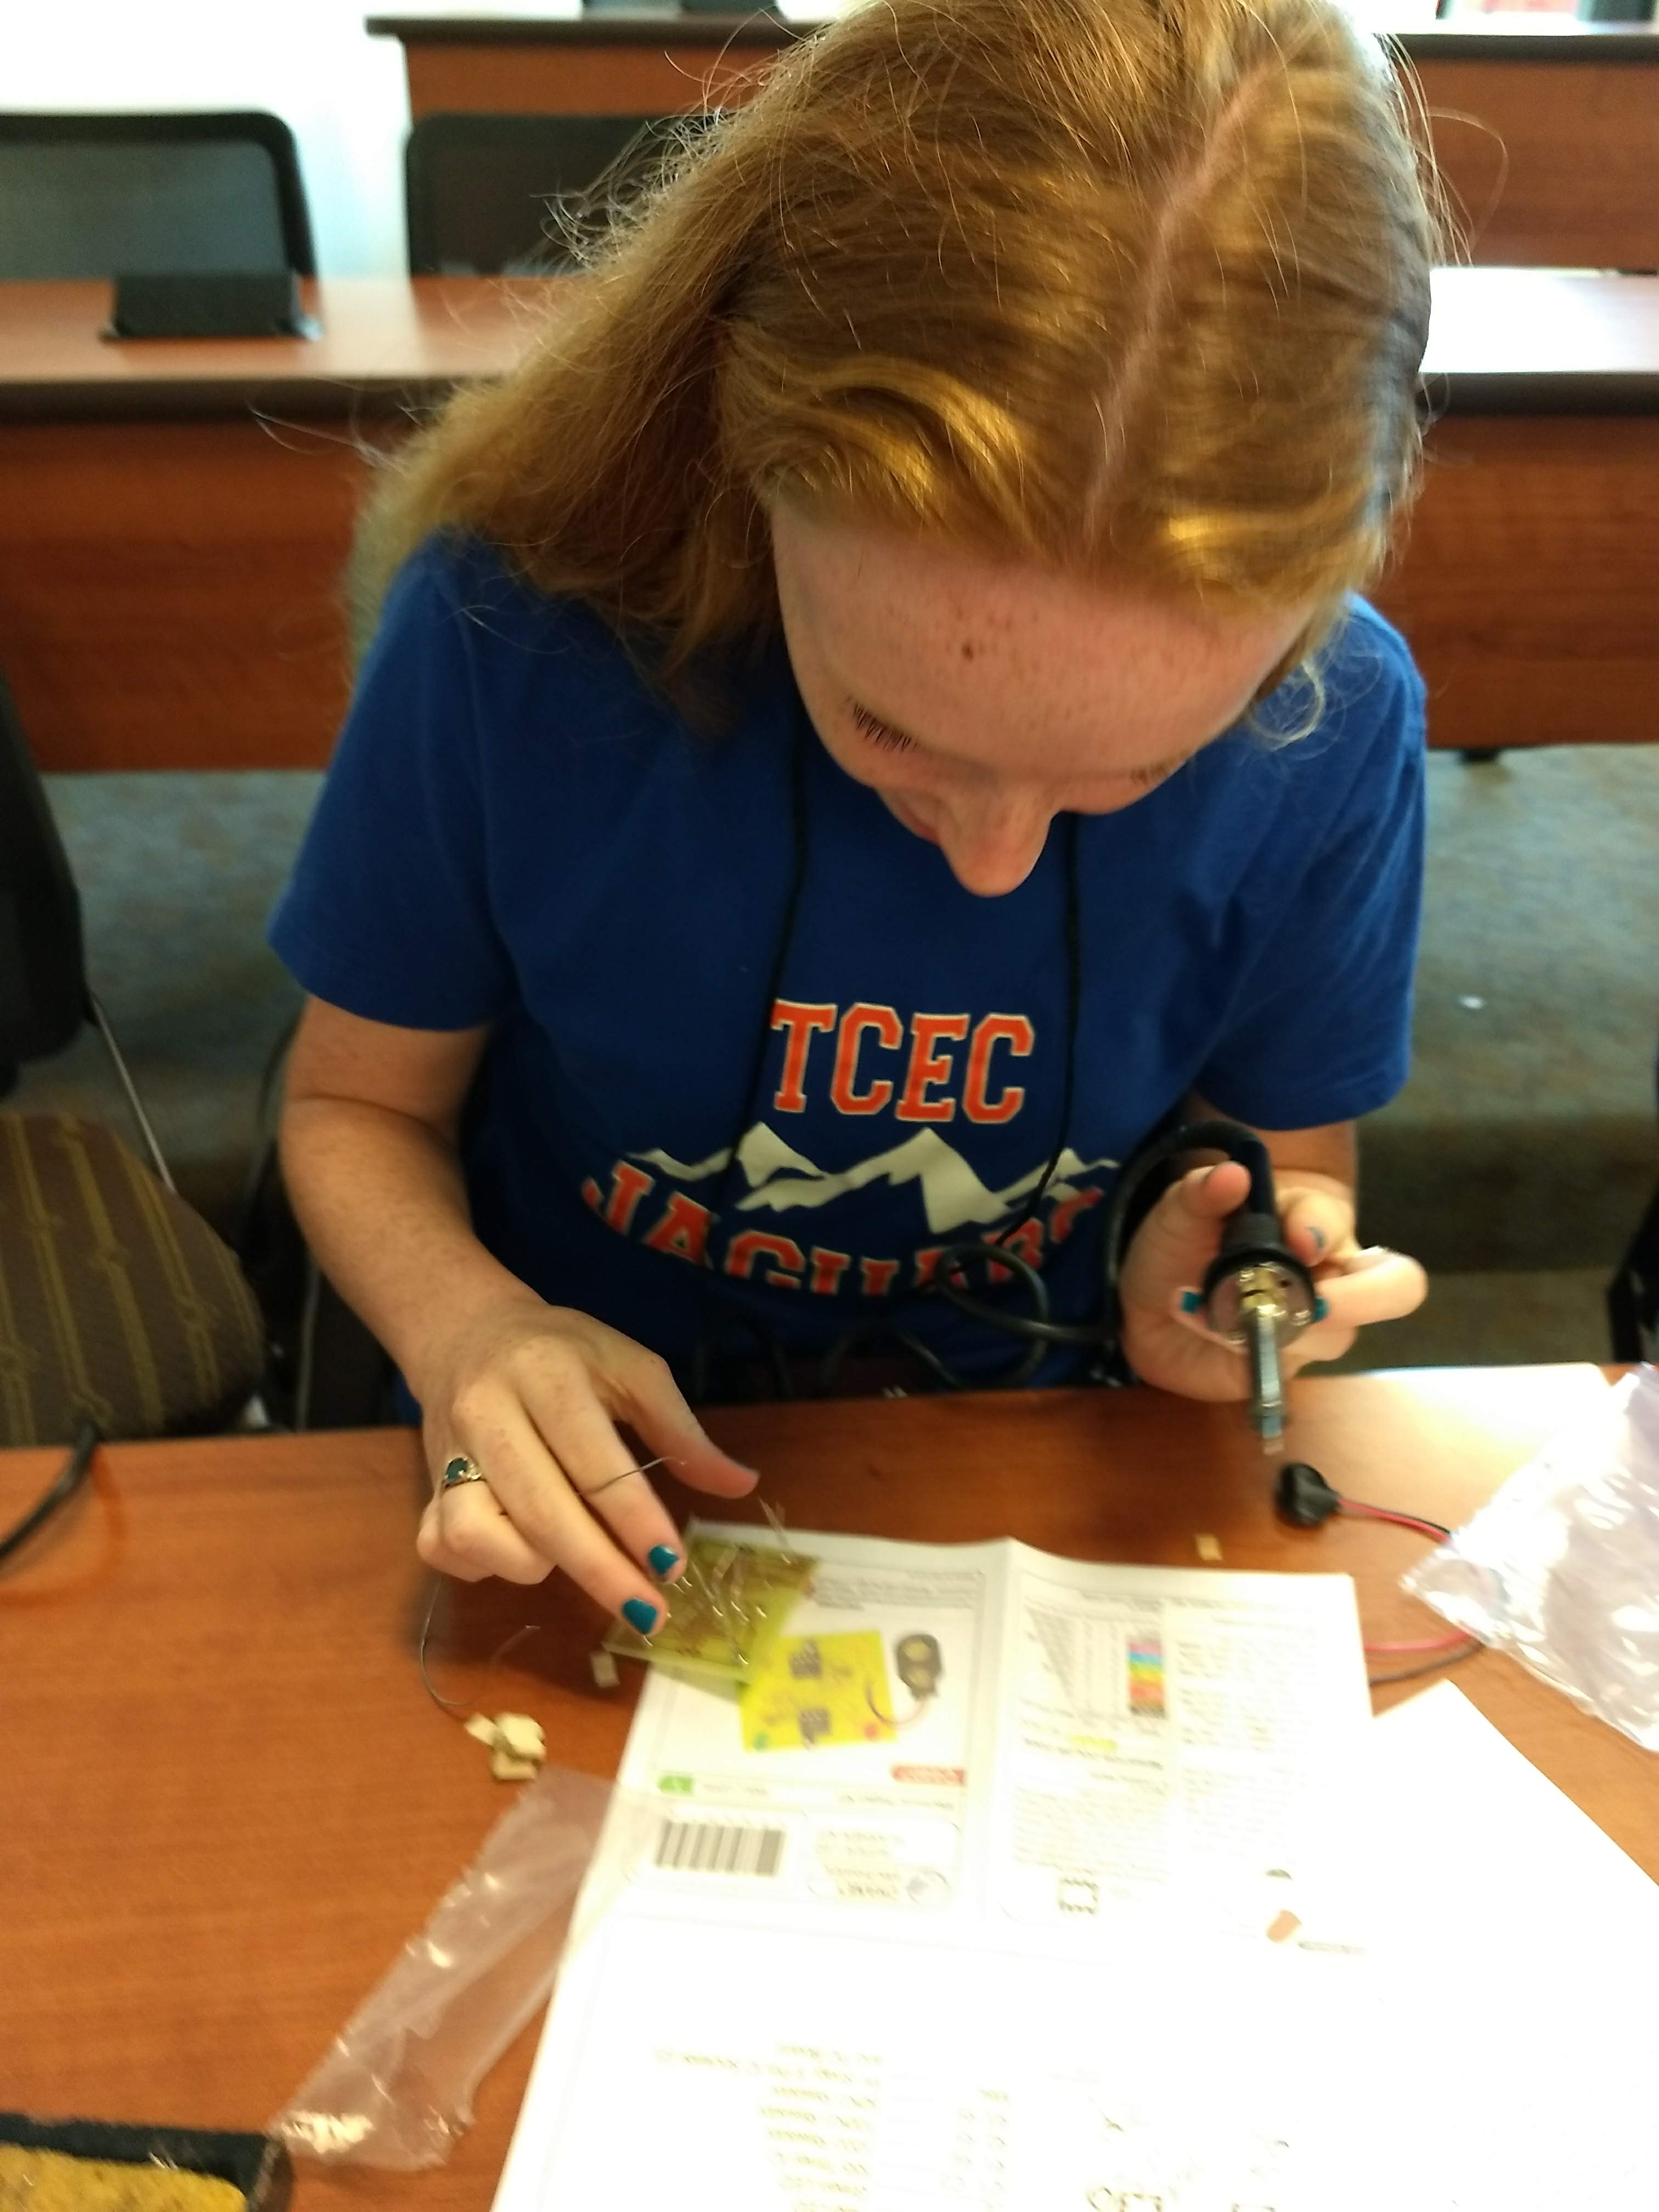 Hannah Smith studying her circuit board making sure everything is right before she solders